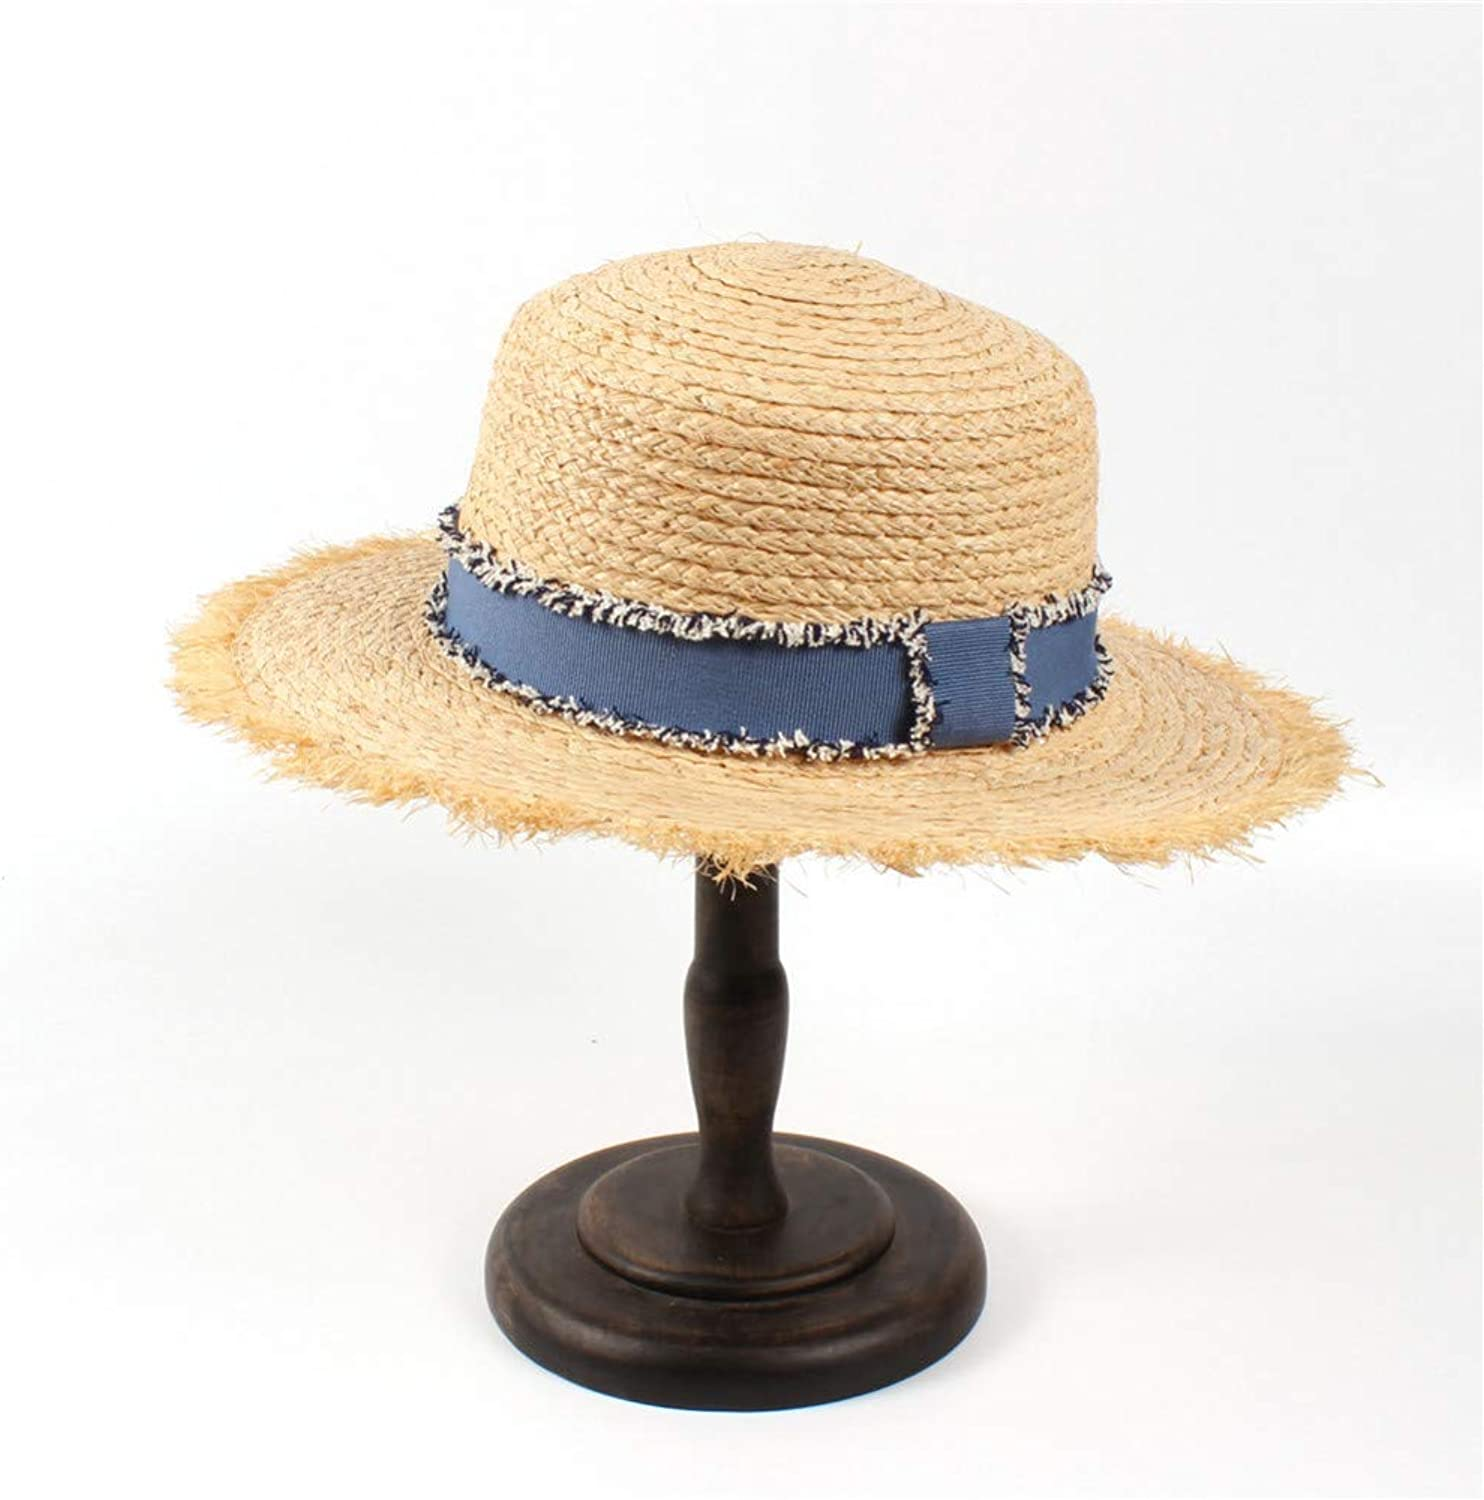 JINRMP Women Beach Sun Hat for Elegant Lady Tassel Flat Pork Pie Bucket Sun Hatgarland Sunbonnet with Denim Ribbon